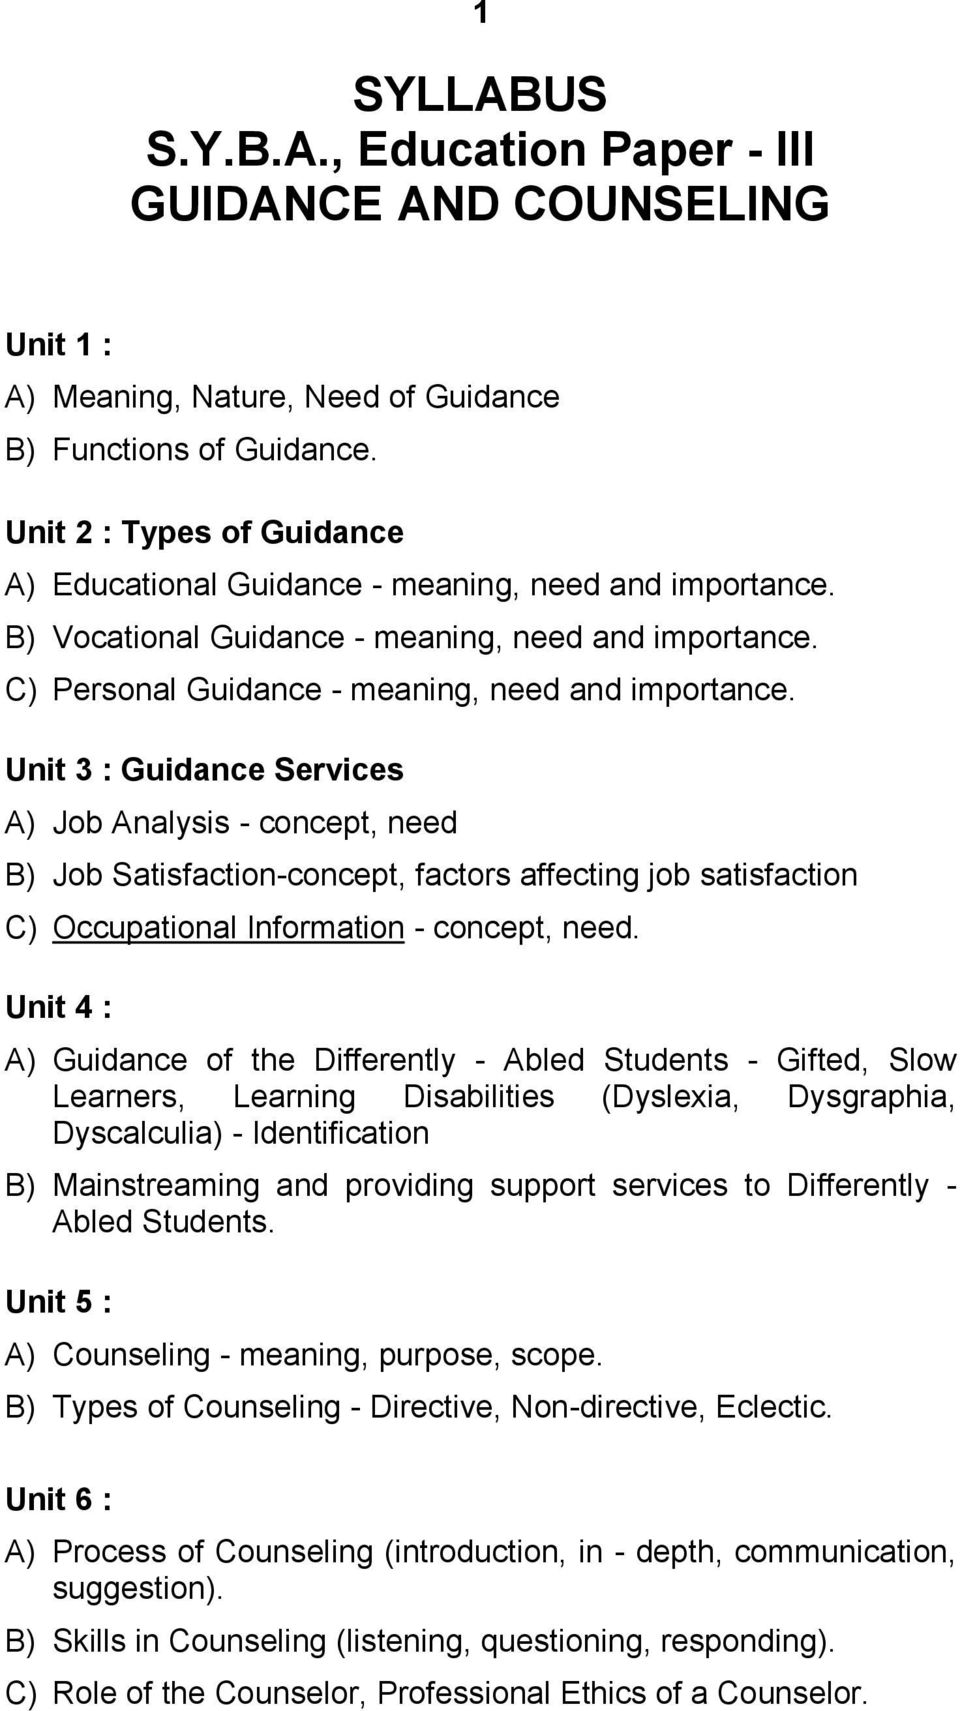 Syllabus Syba Education Paper Iii Guidance And Counseling Pdf